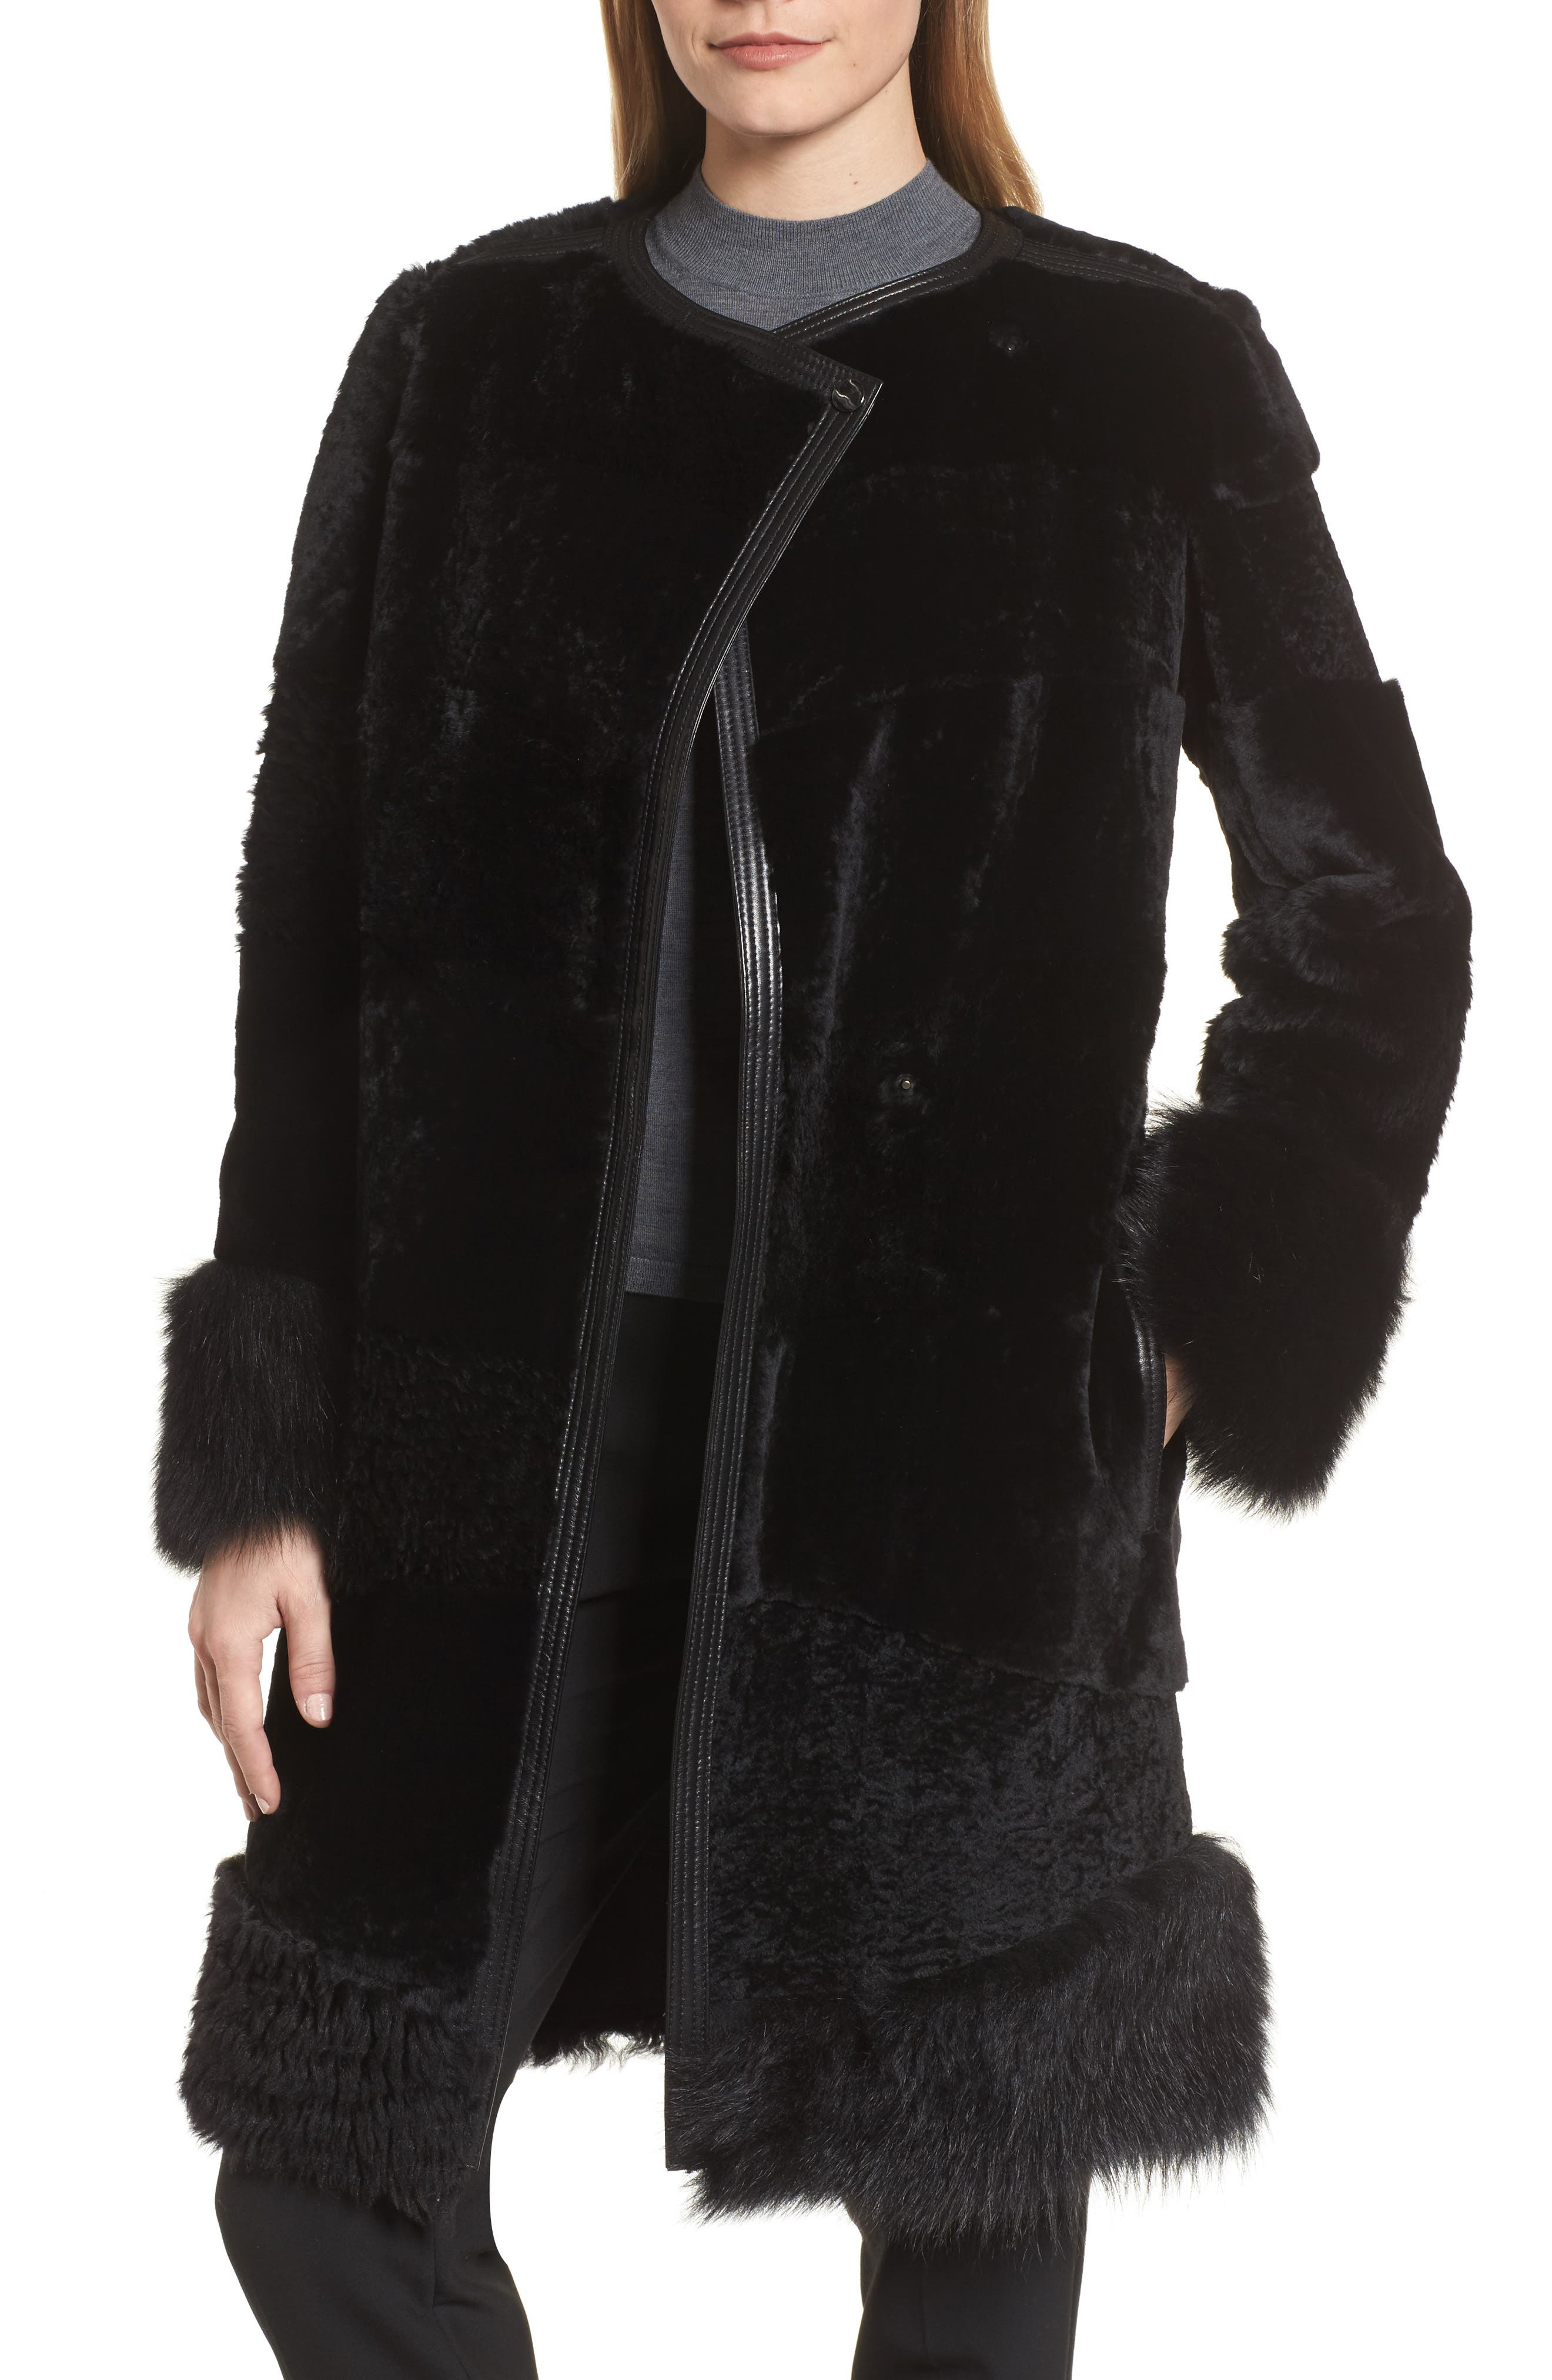 Sopora Long Genuine Shearling & Leather Trim Jacket,                             Alternate thumbnail 4, color,                             001